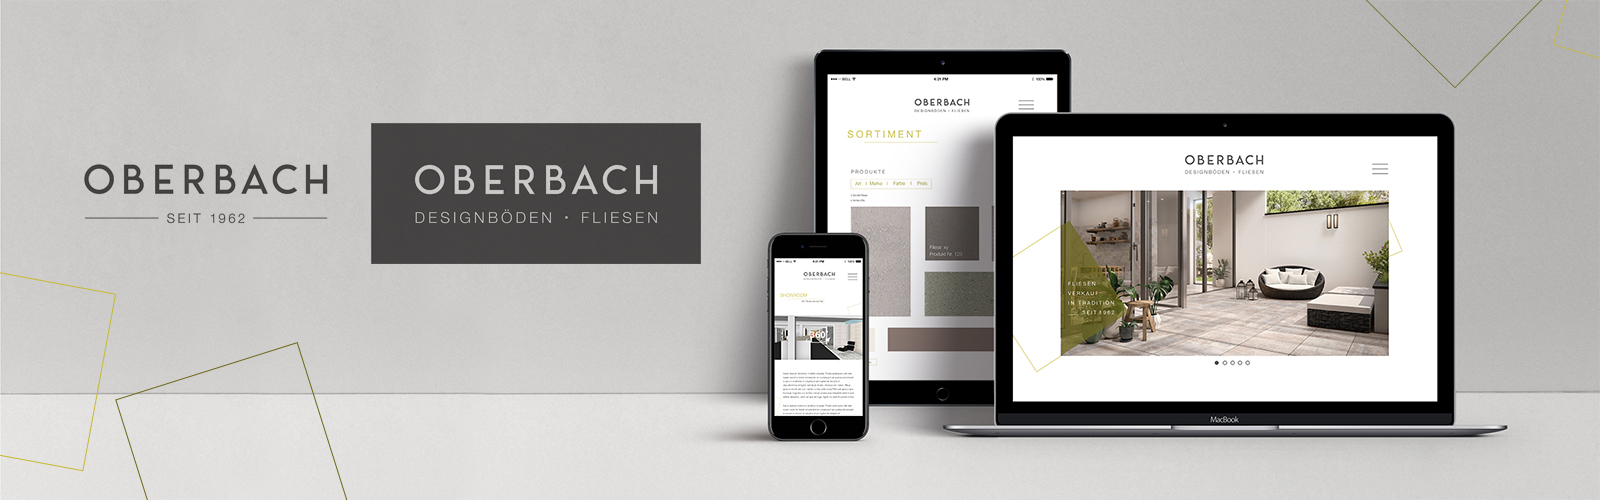 Braunwagner Communication Design Oberbach Corporate Design 2018